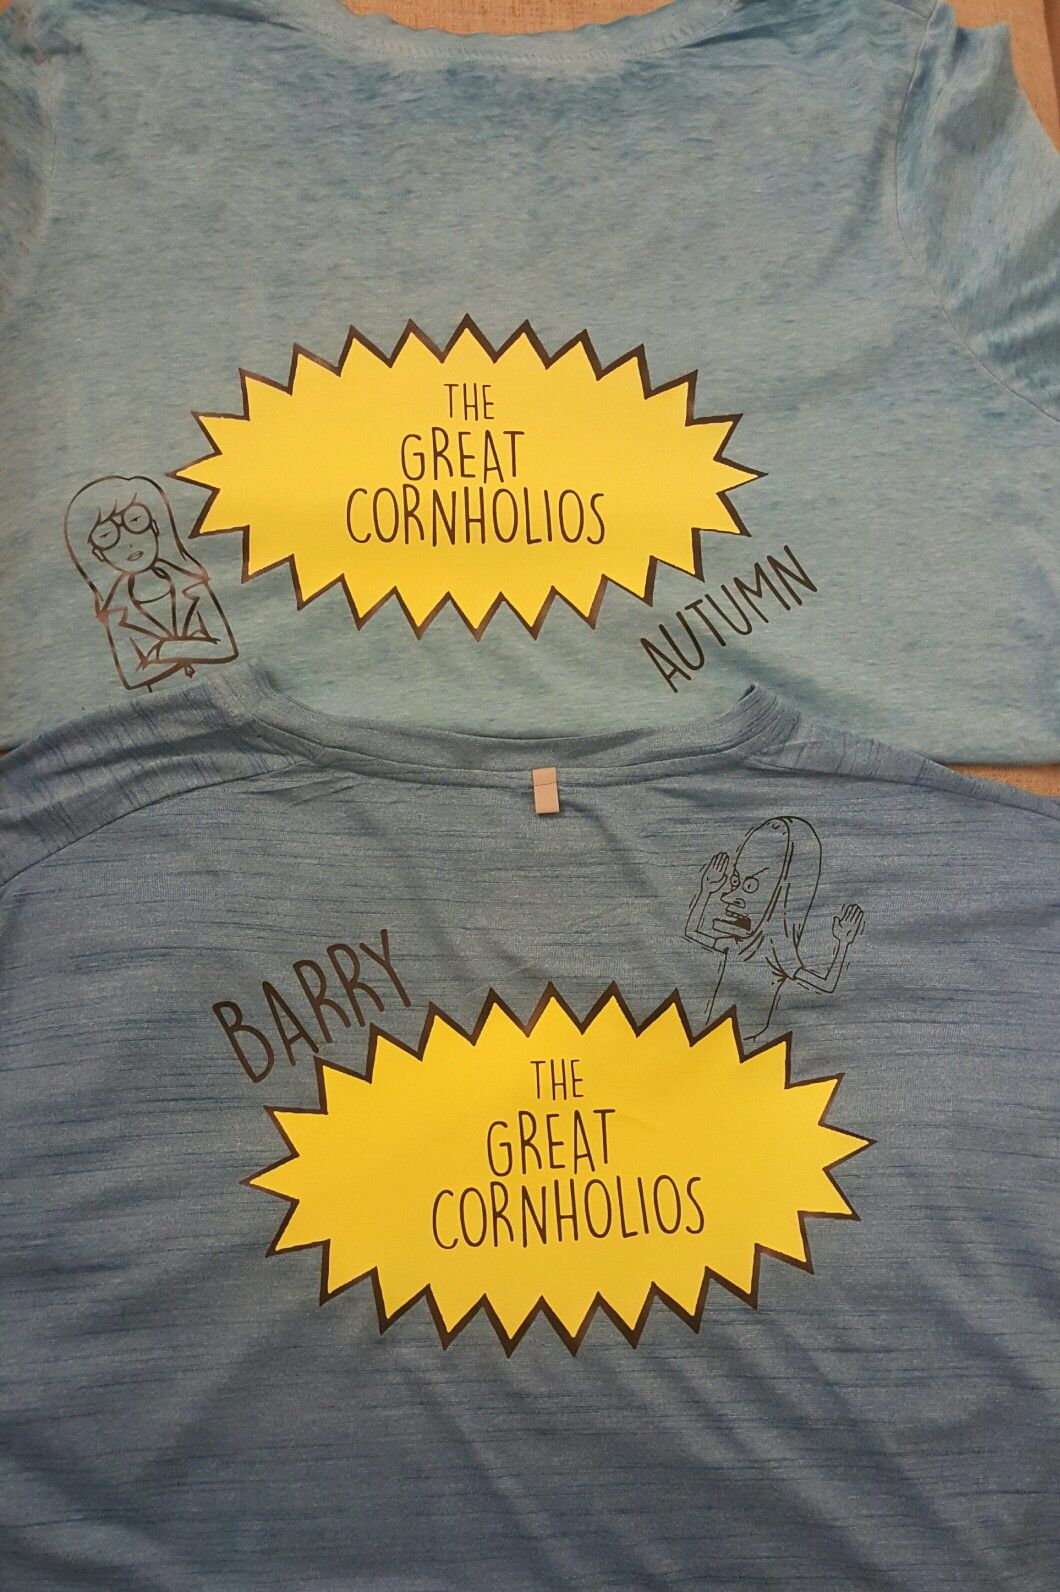 6d1bd82b7d89 Team/Couples shirts for an upcoming Cornhole tournament. We're The Great  Cornholios. I used my Silhouette Cameo to cut HTV and my heat press to  apply it.